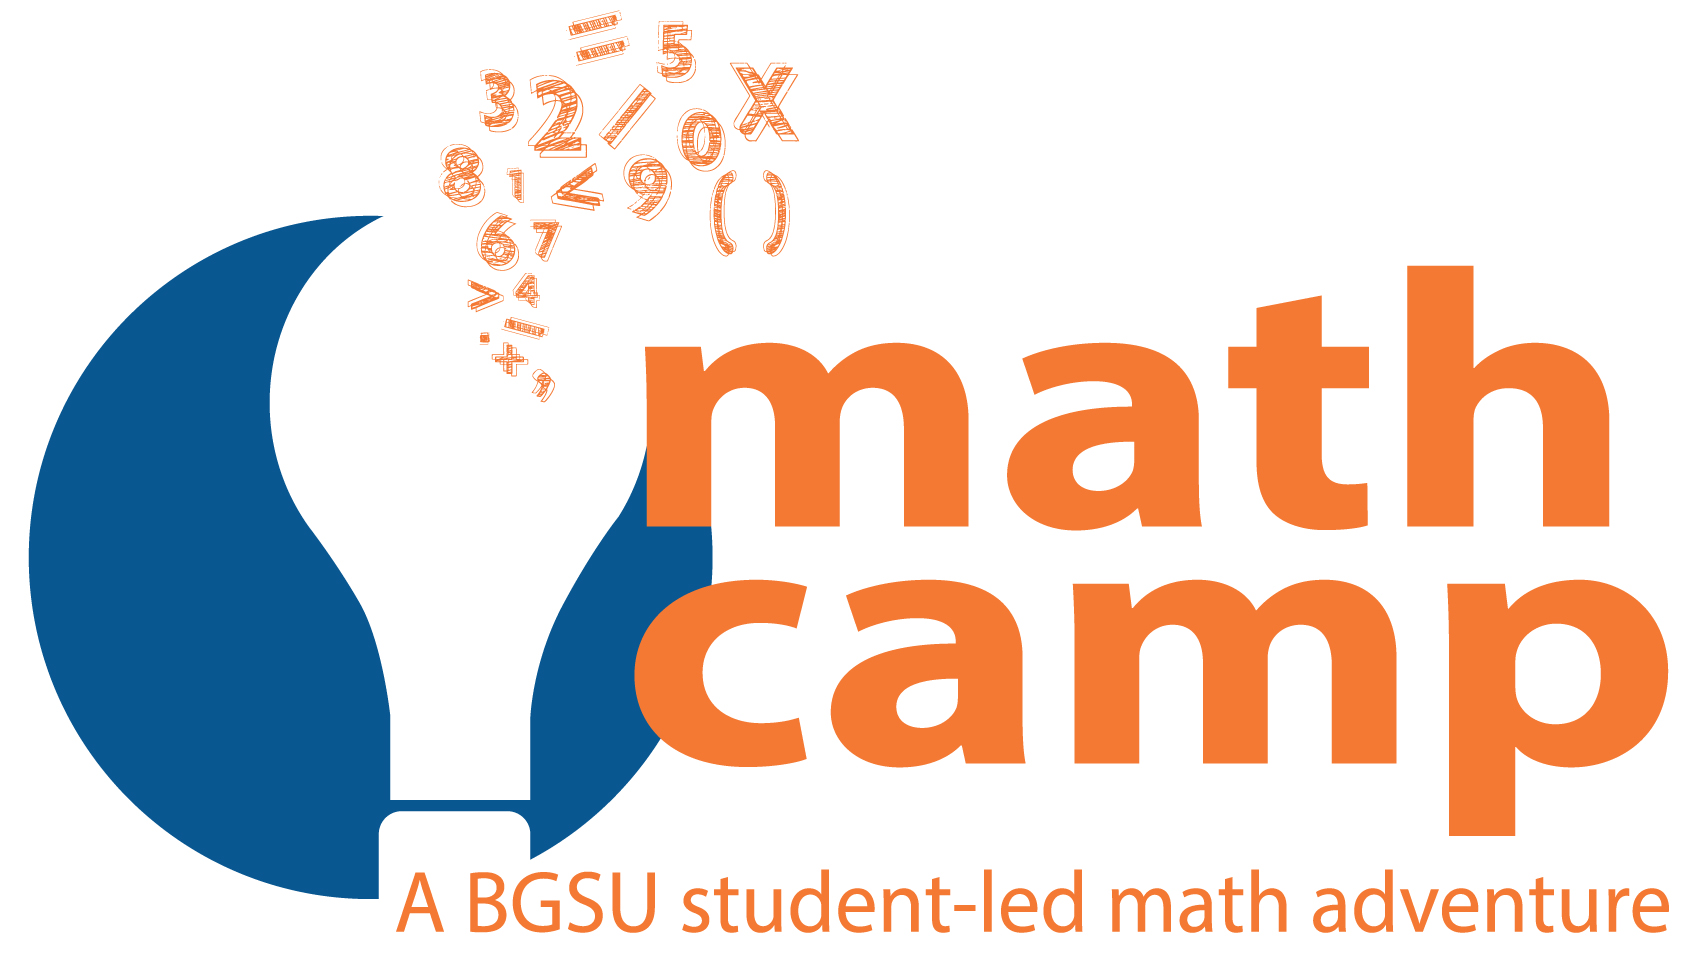 Math Camp 2019 March 30 Tiffin - Heidelberg University Partnership